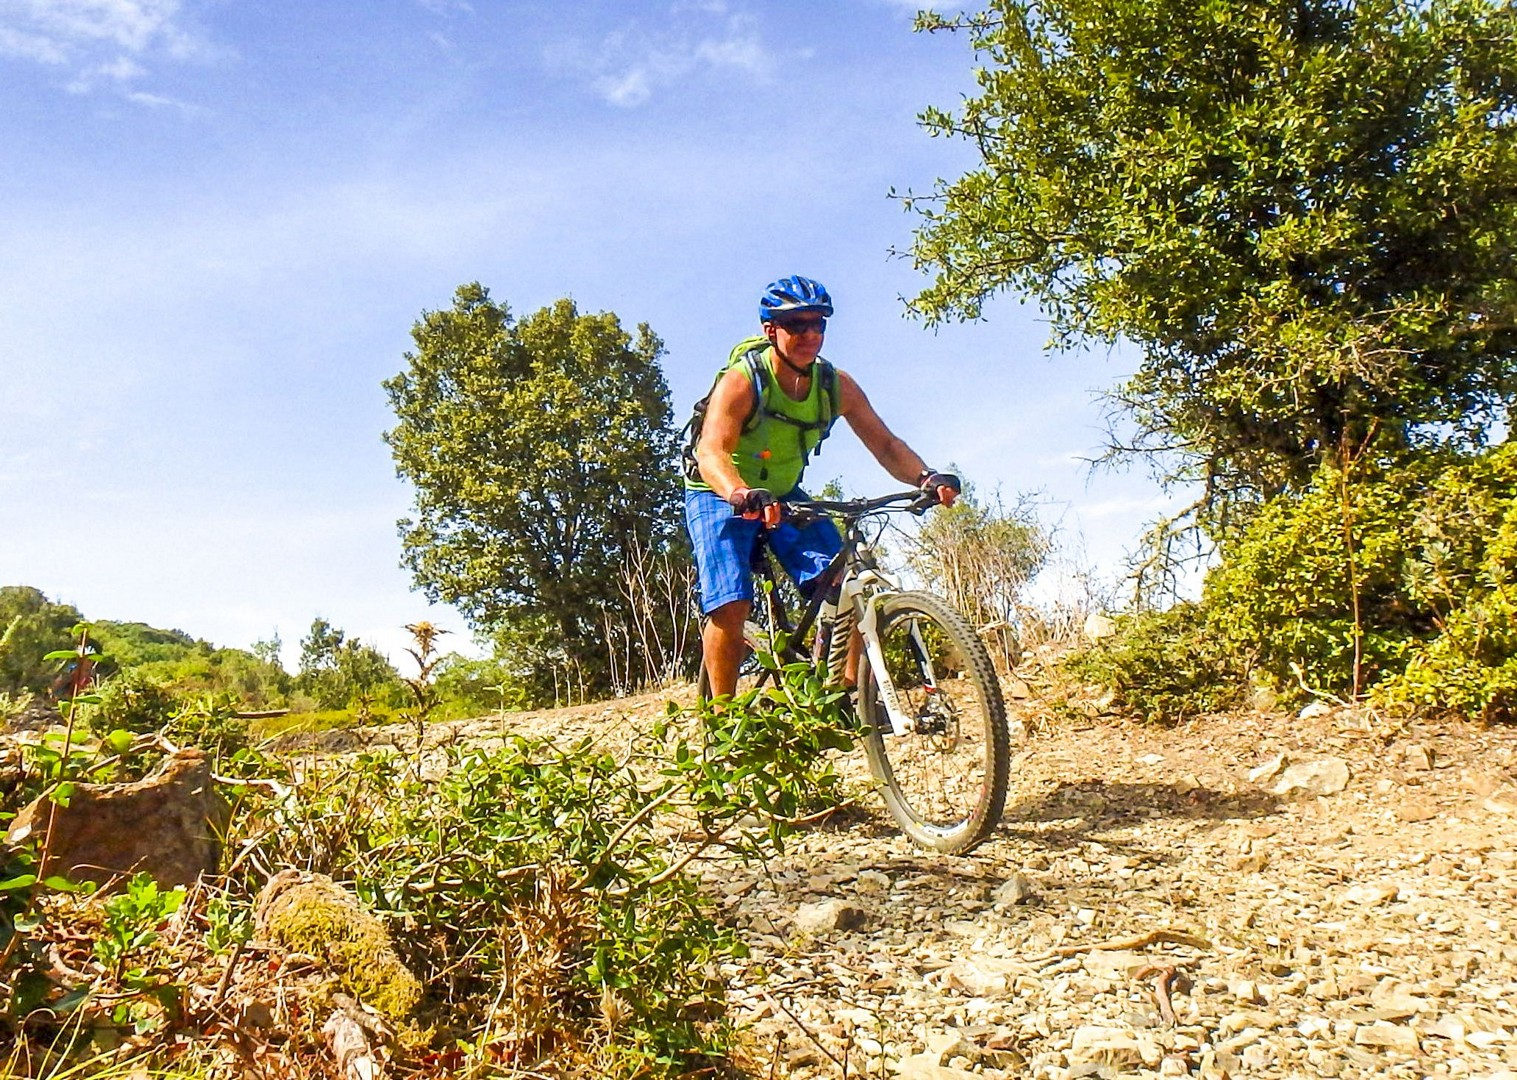 high-quality-mountain-biking-coast-to-coast-self-guided.jpg - Italy - Sardinia - Coast to Coast - Self-Guided Mountain Bike Holiday - Mountain Biking